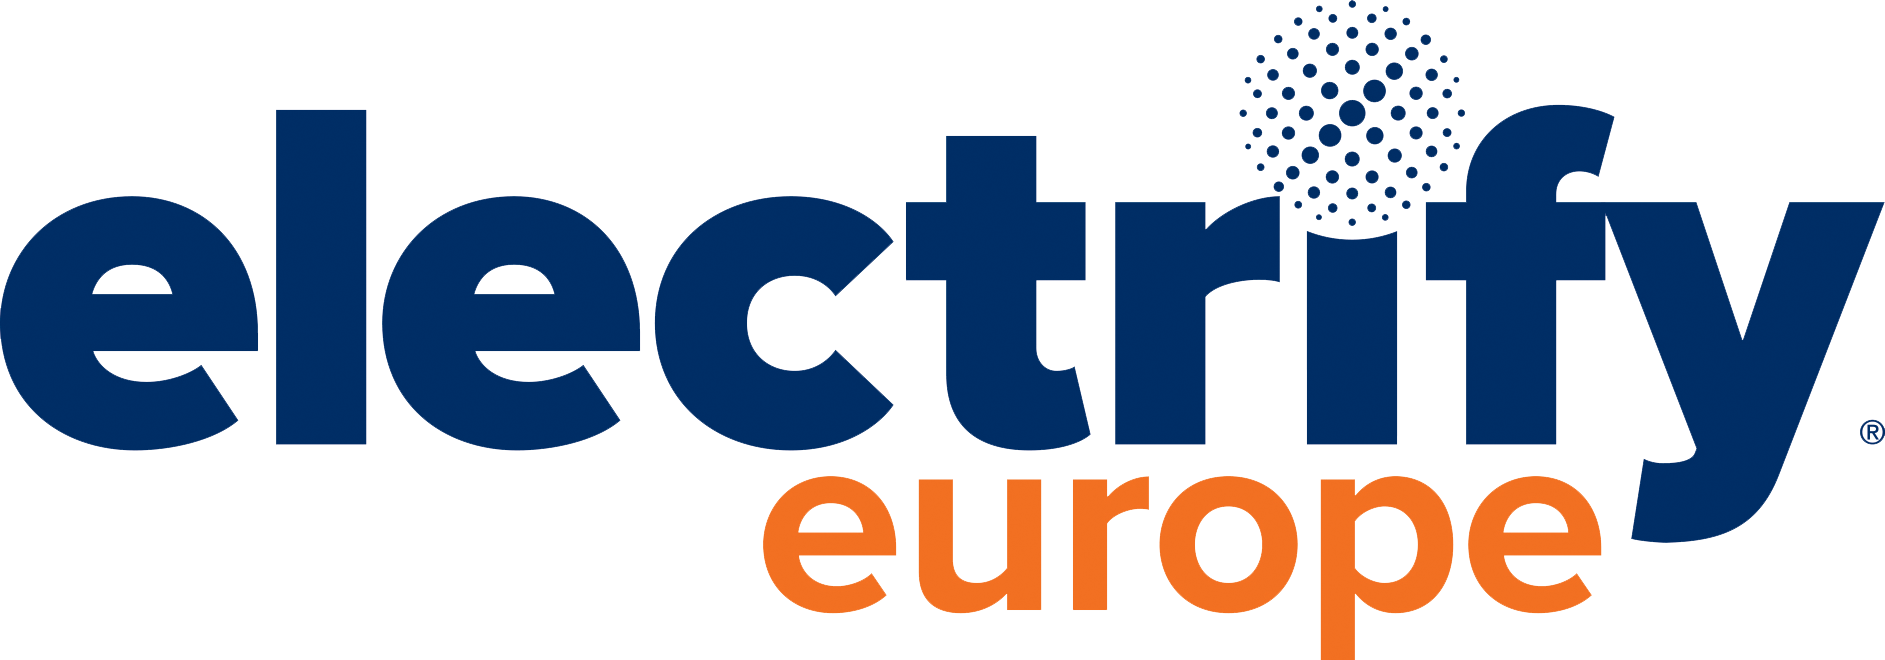 Electrify Europe Expo & Conference, 19-21 June 2018, Vienna, Austria